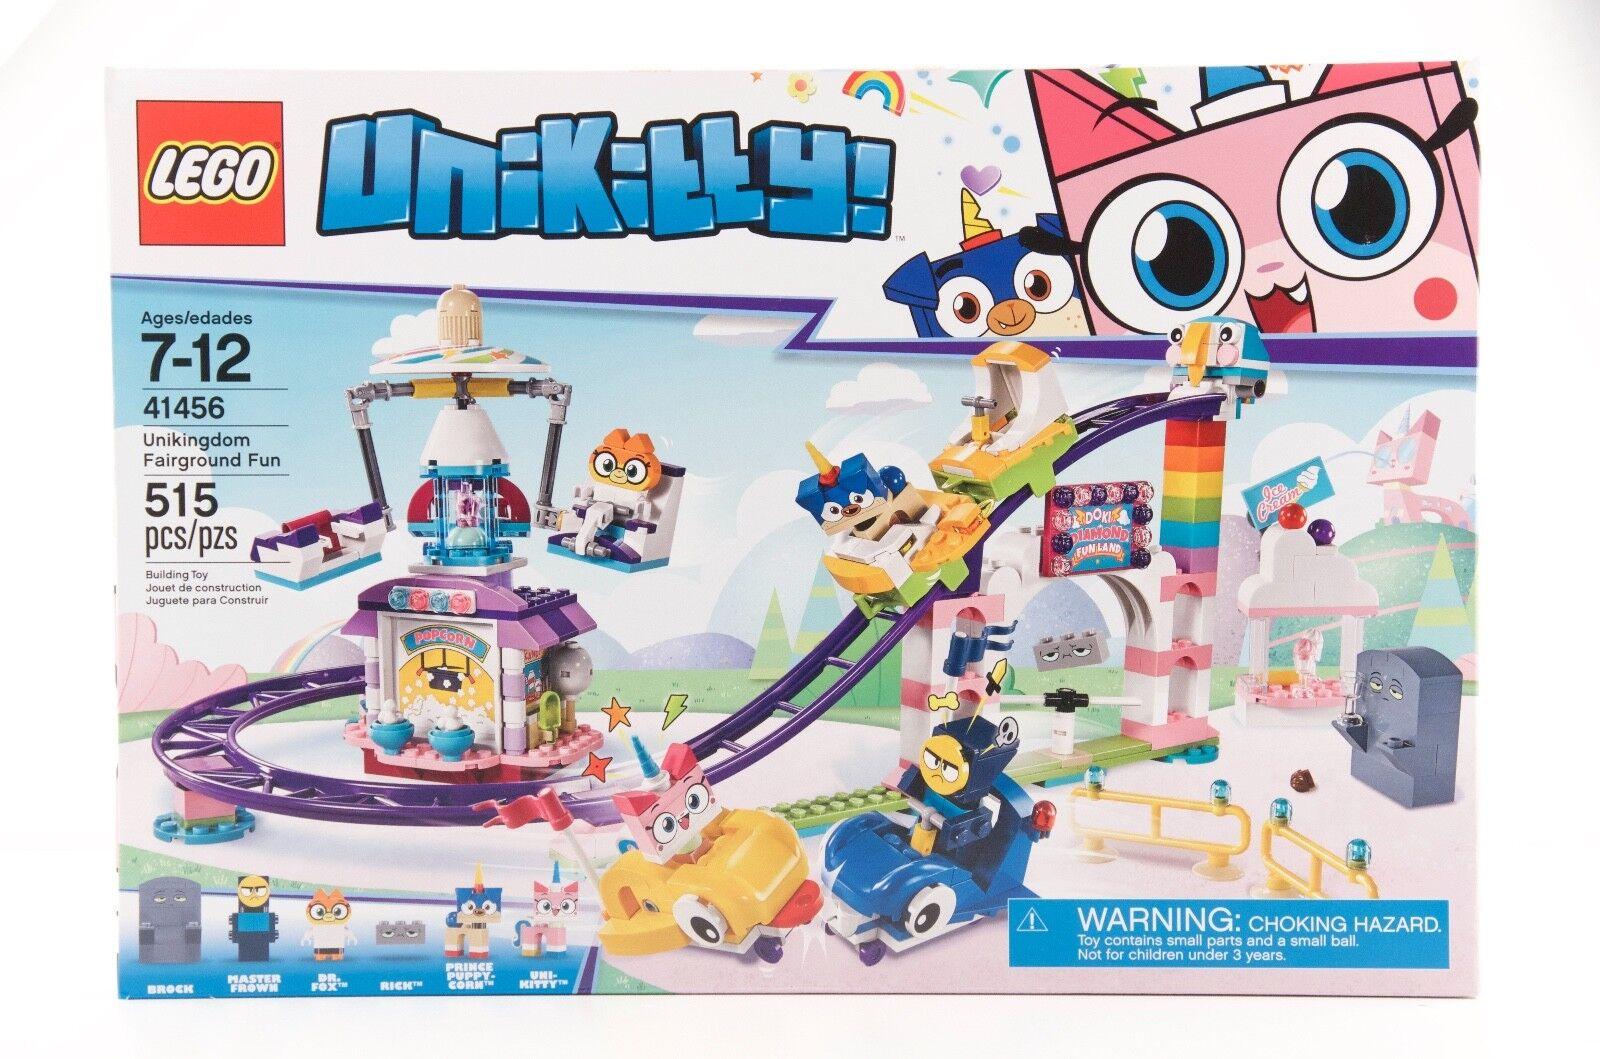 Lego, 41456, UNIKITTY, Unikingdom Fairground Fun, 515 PCS, NIB, Ages 7+